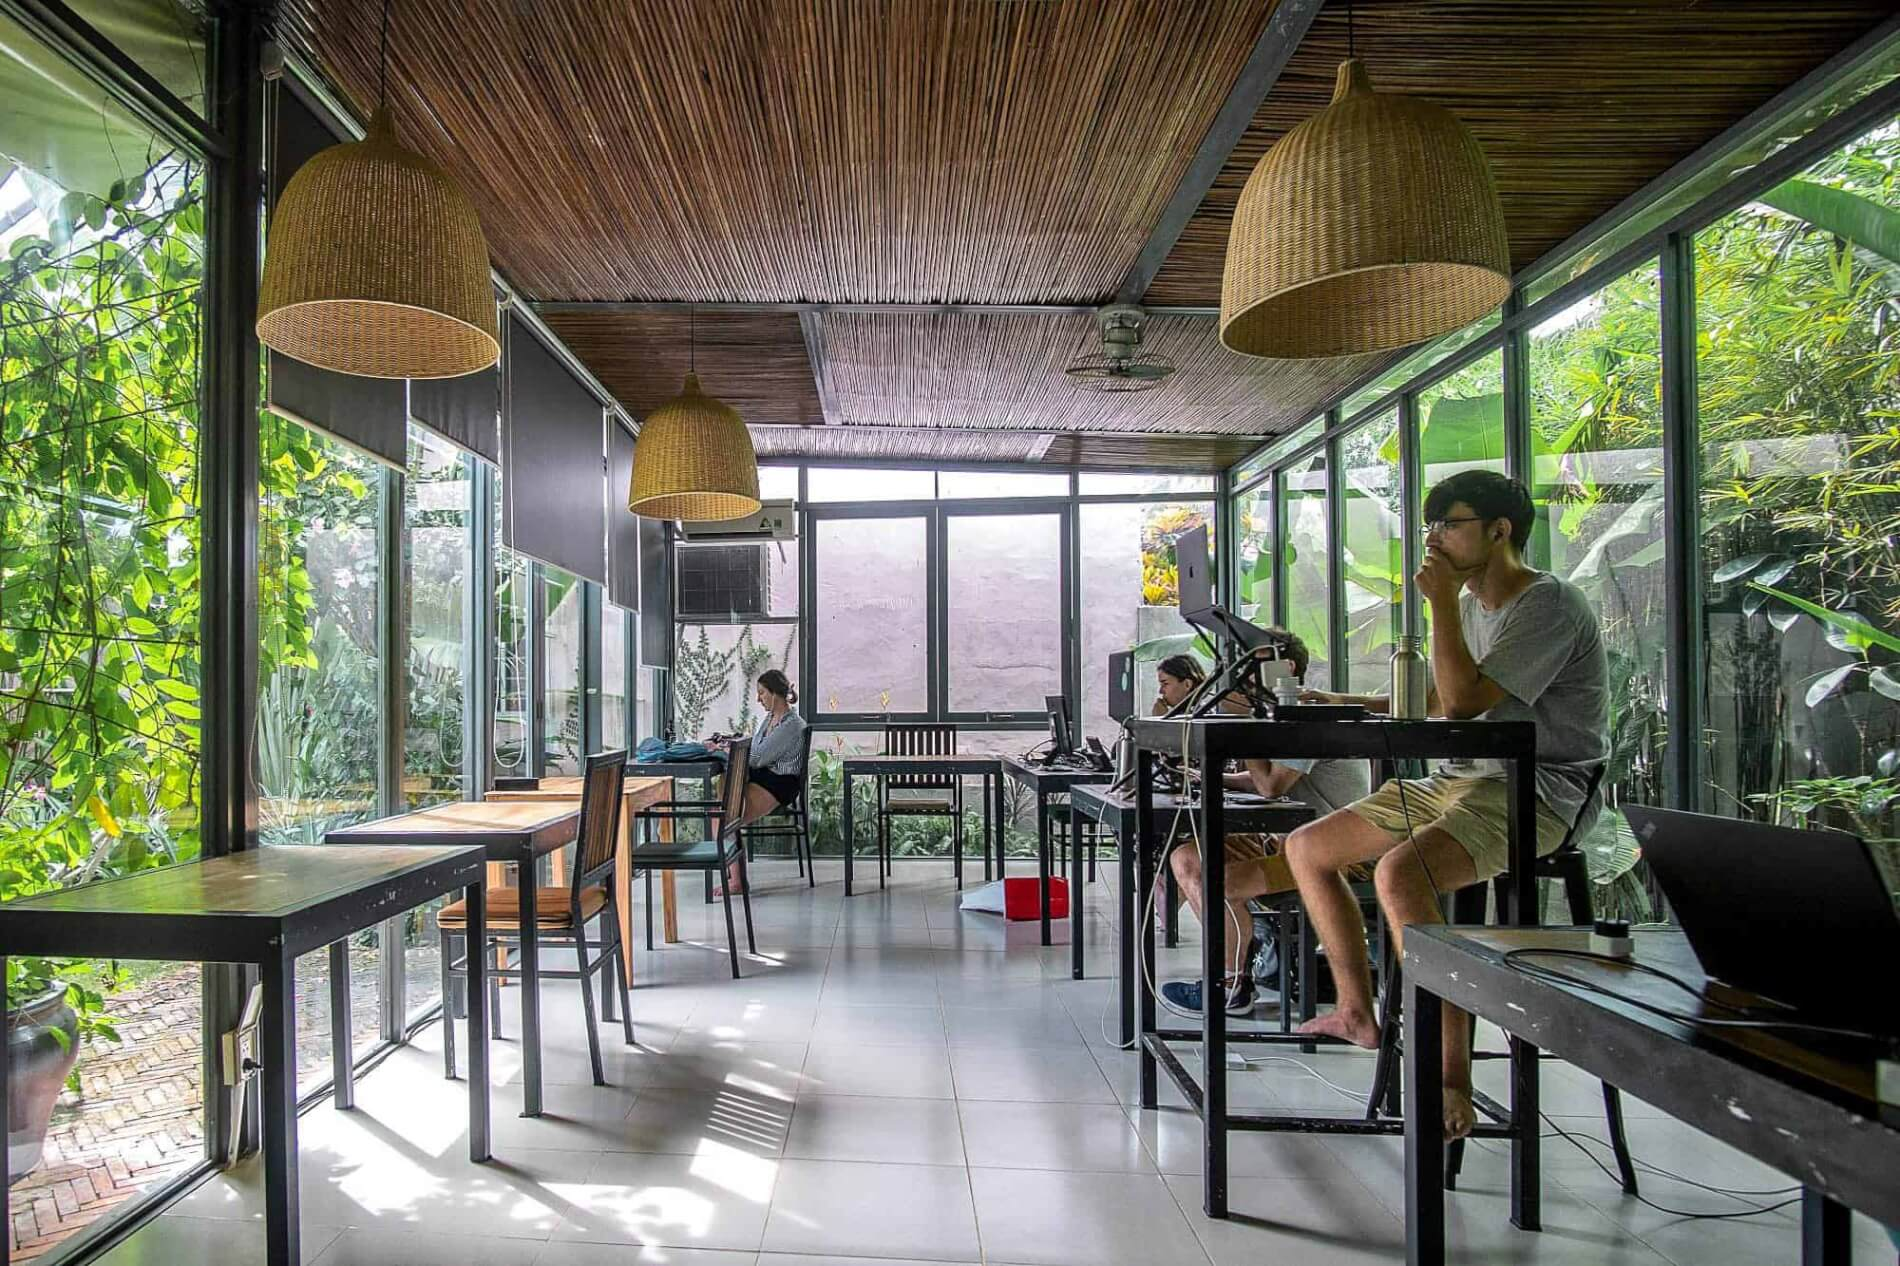 The Hub - Workspaces for digital nomads in Hoi An